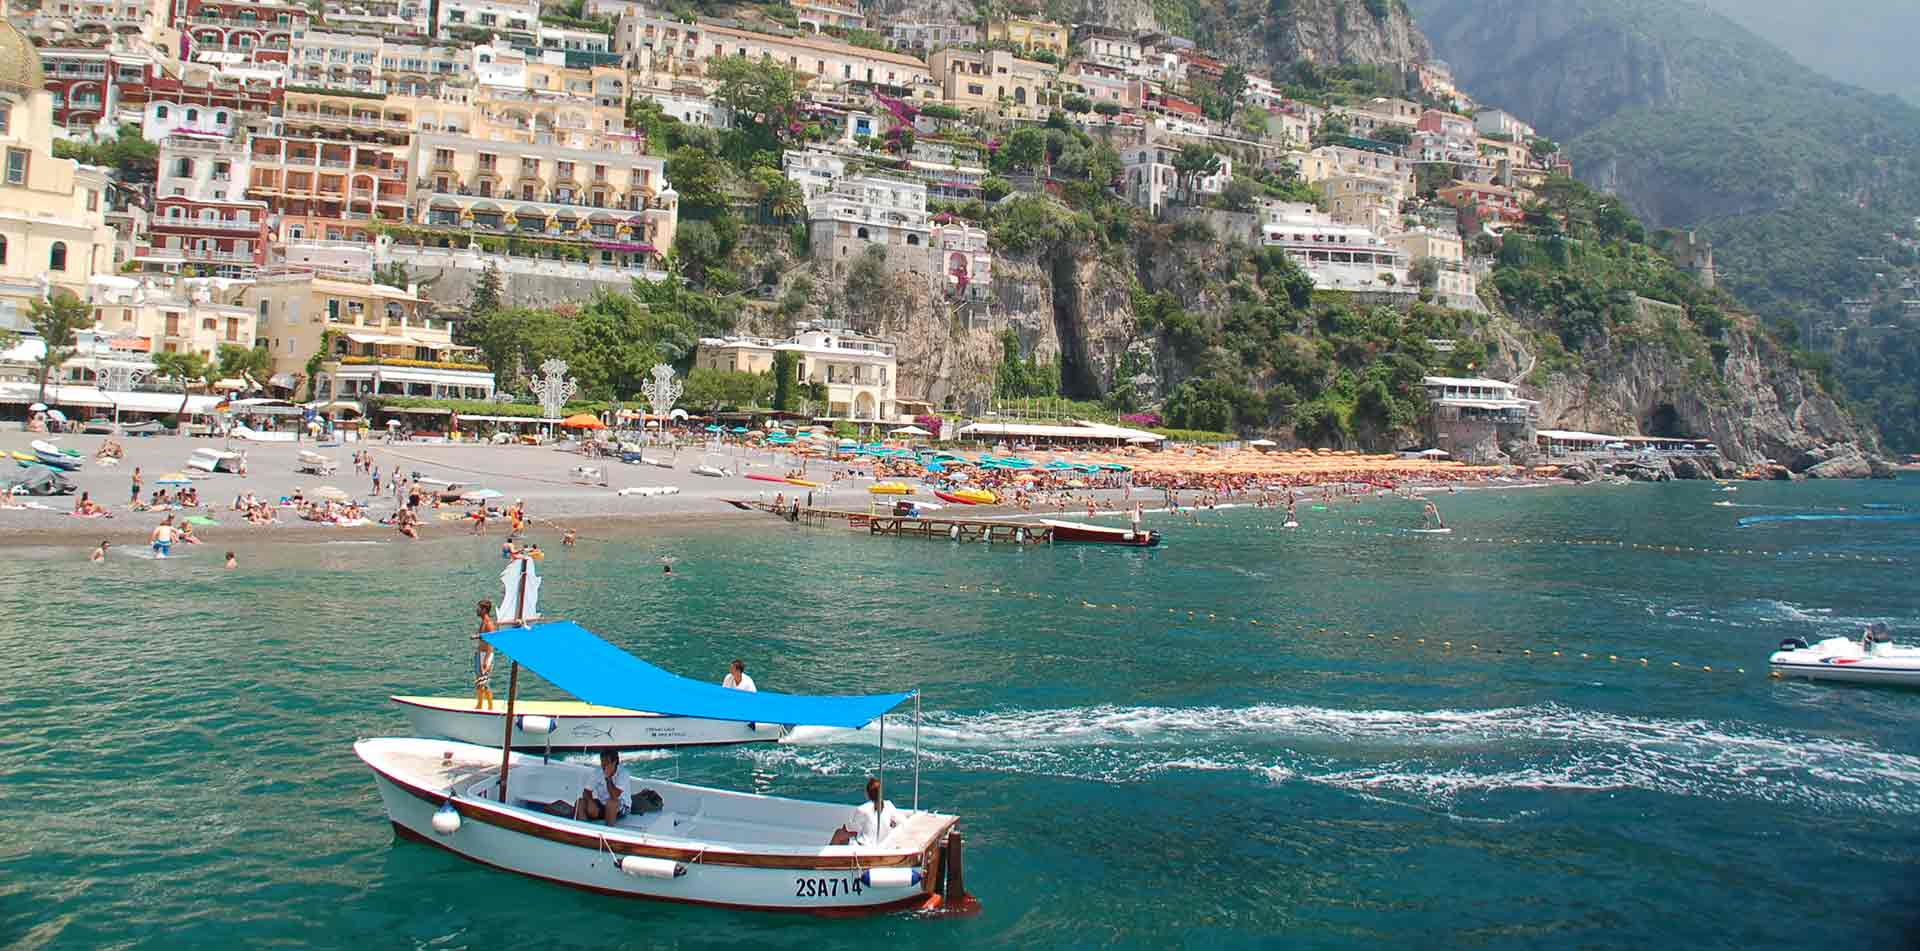 Europe Italy view of Cinque Terre beach and cliffside village from the water - luxury vacation destinations